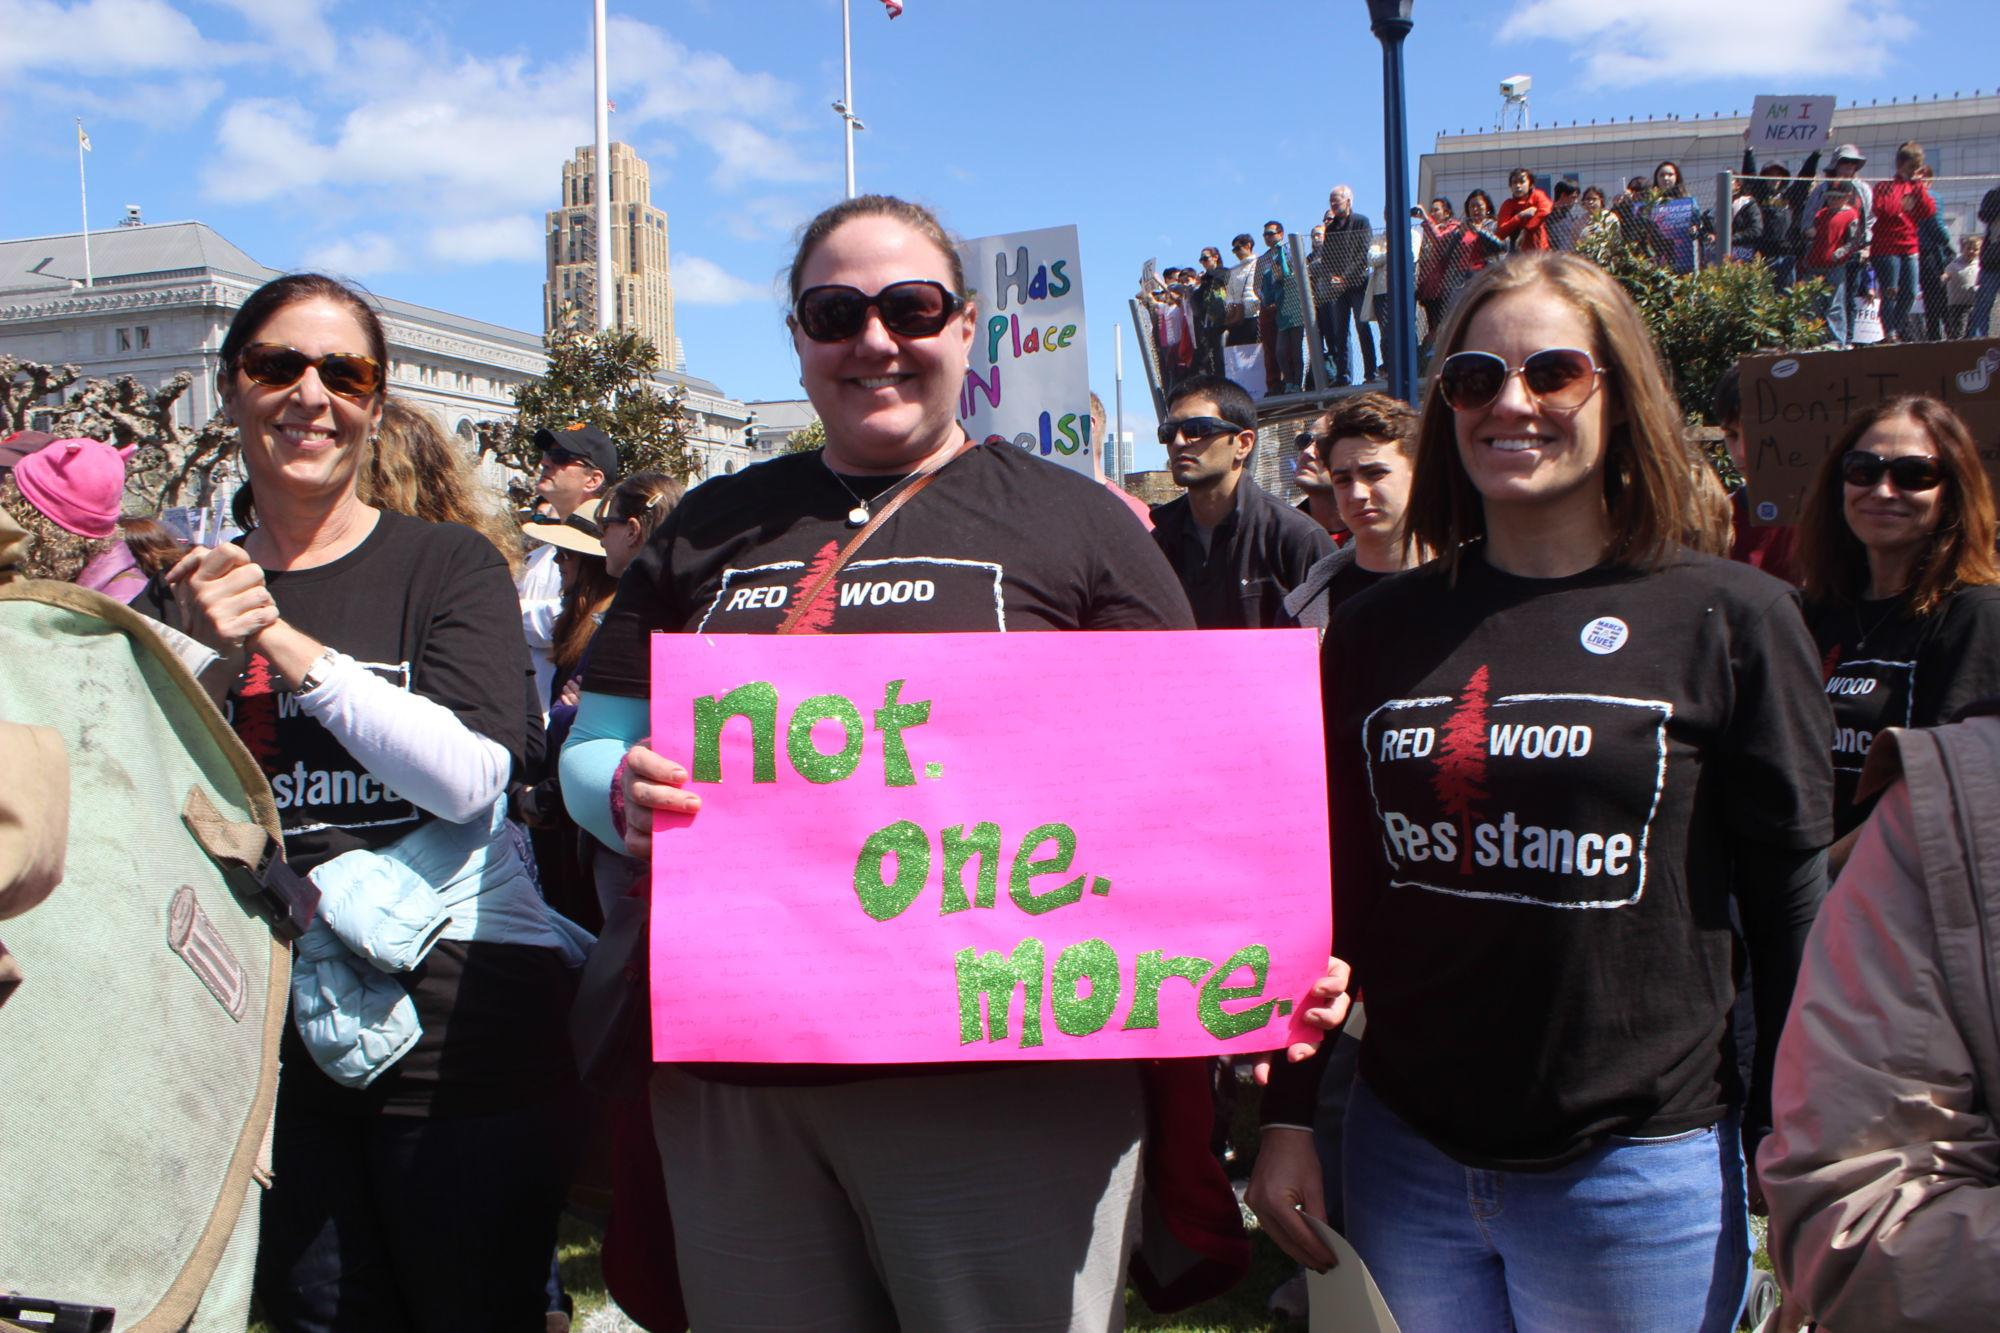 Teachers+Melissa+Boles+and+Amy+Mastromonaco+wear+shirts+that+say+%E2%80%9CRedwood+Resistance%E2%80%9D+at+March+for+Our+Lives+rally